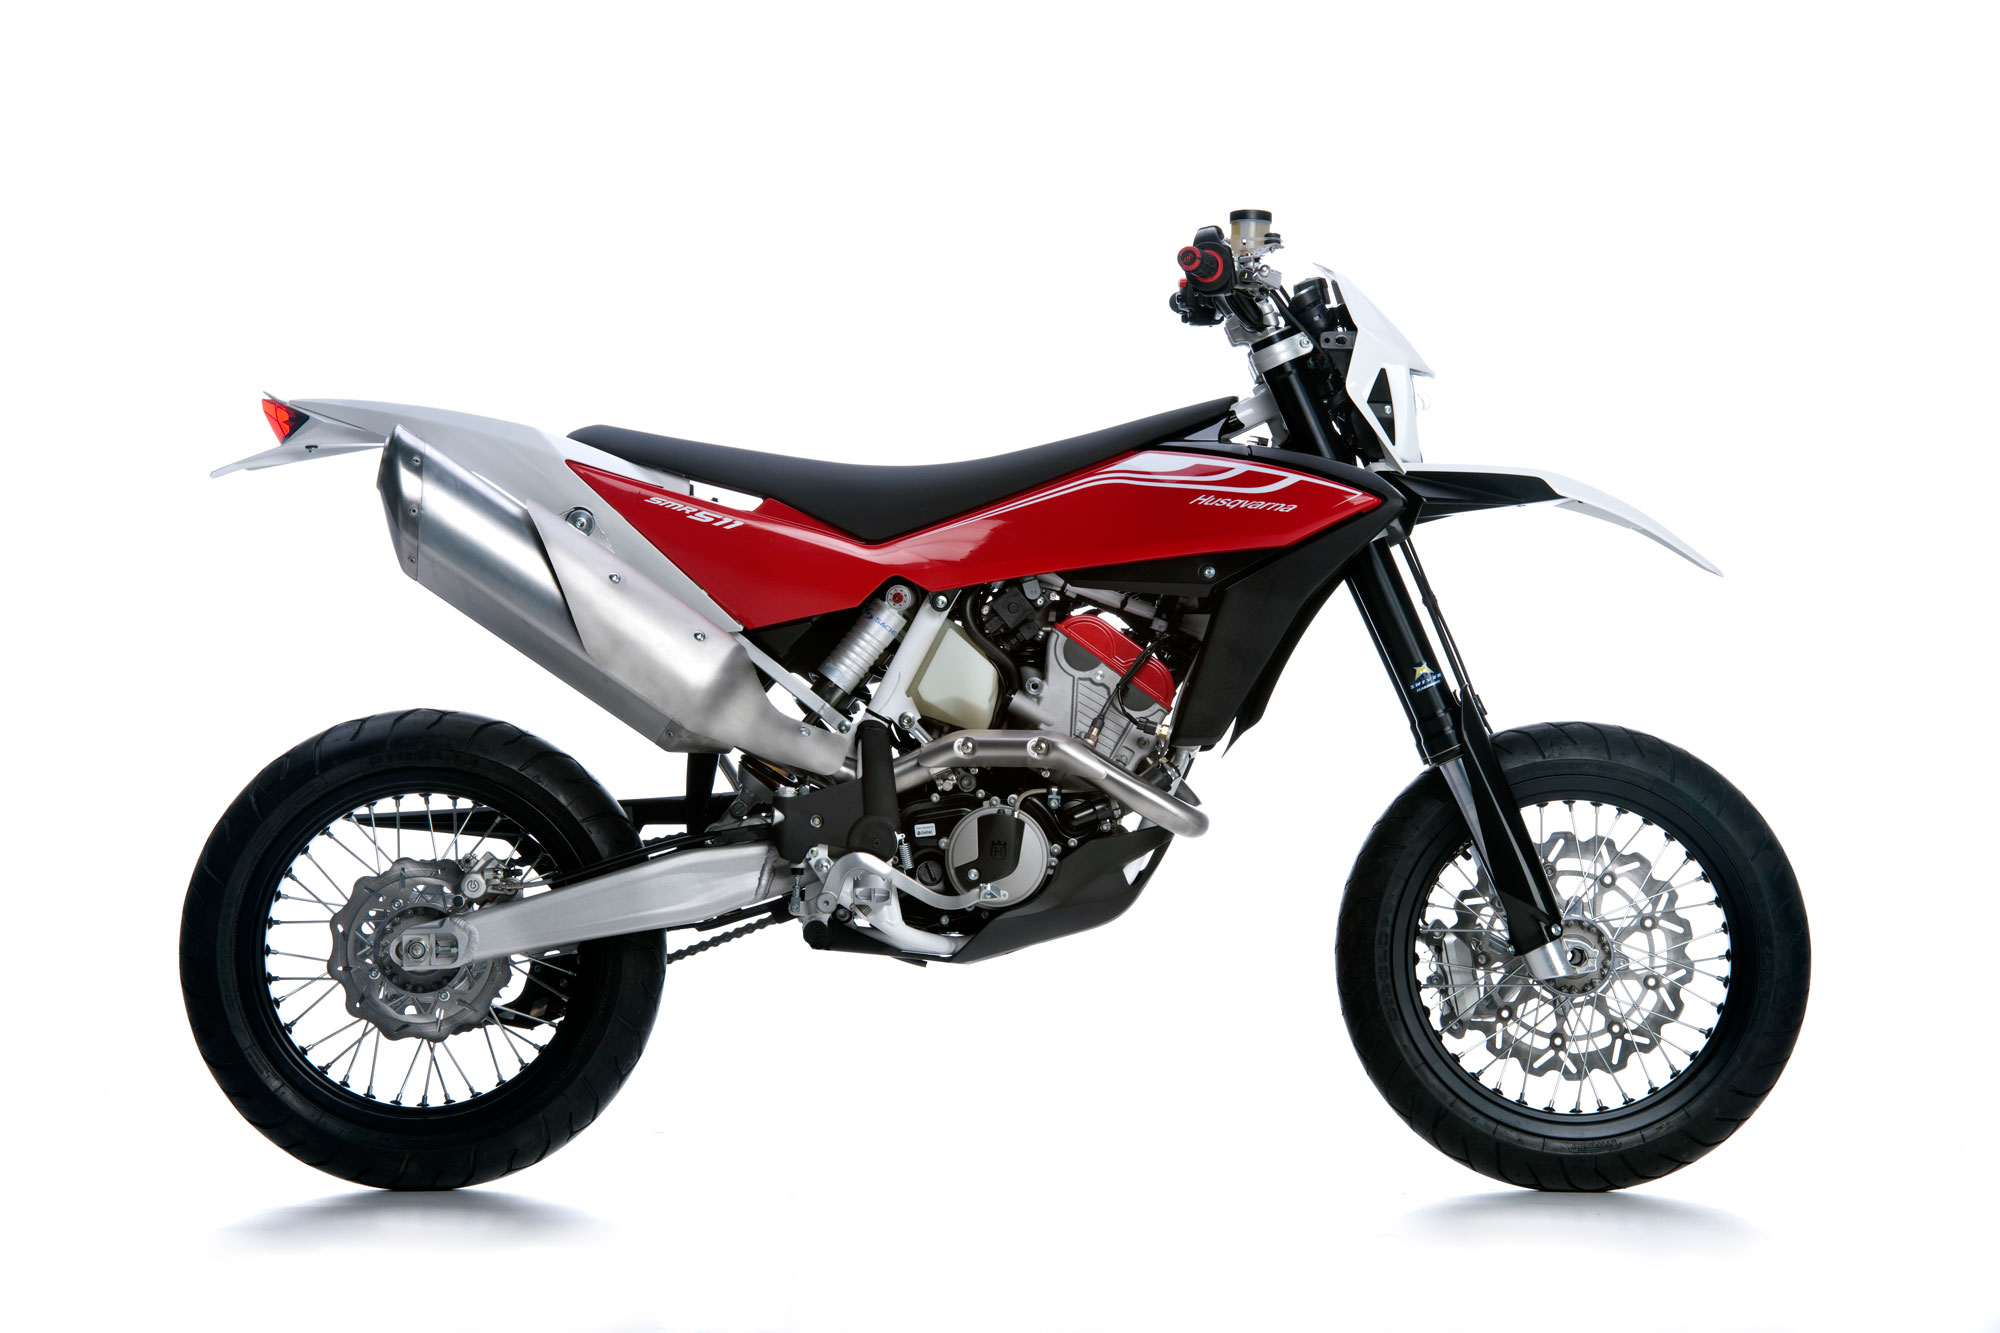 Moto Union Super motard #5